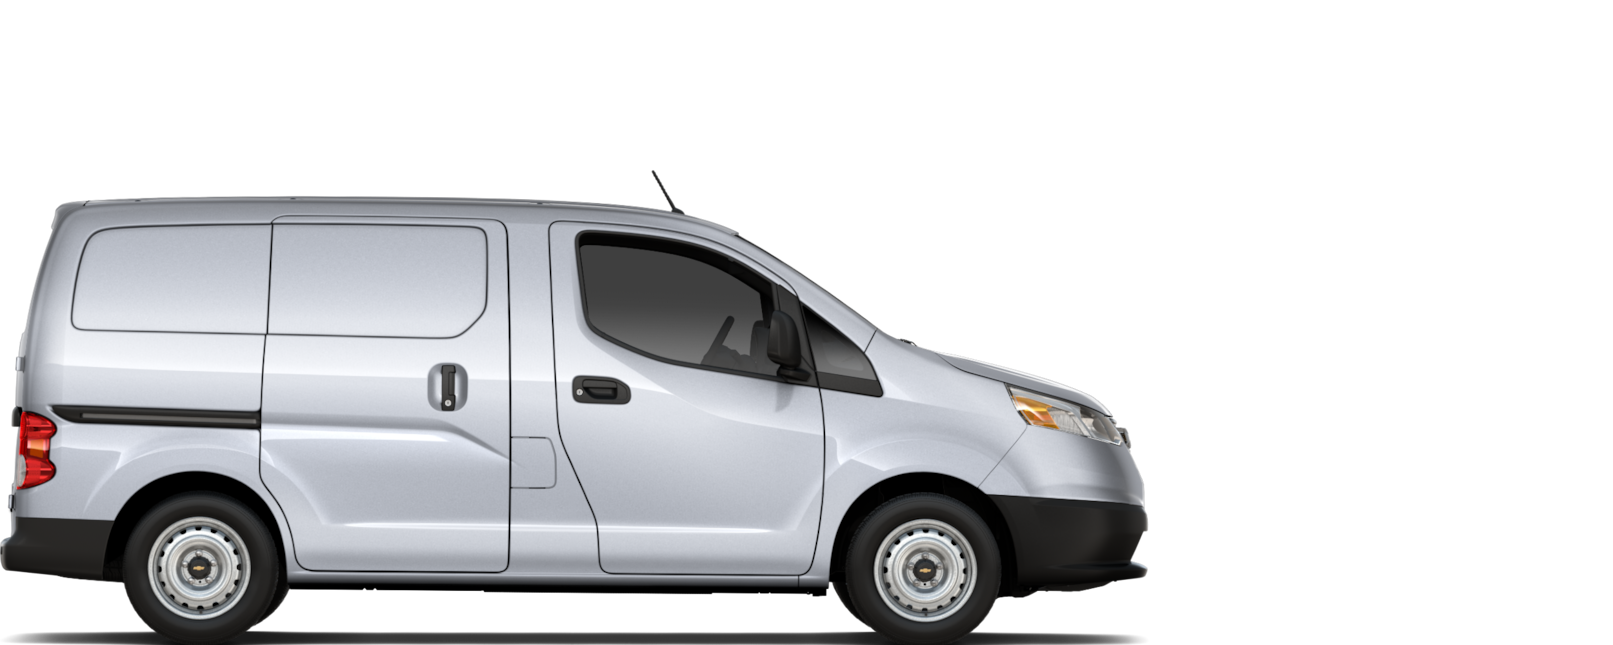 2017 City Express: Small Cargo Van | Chevrolet